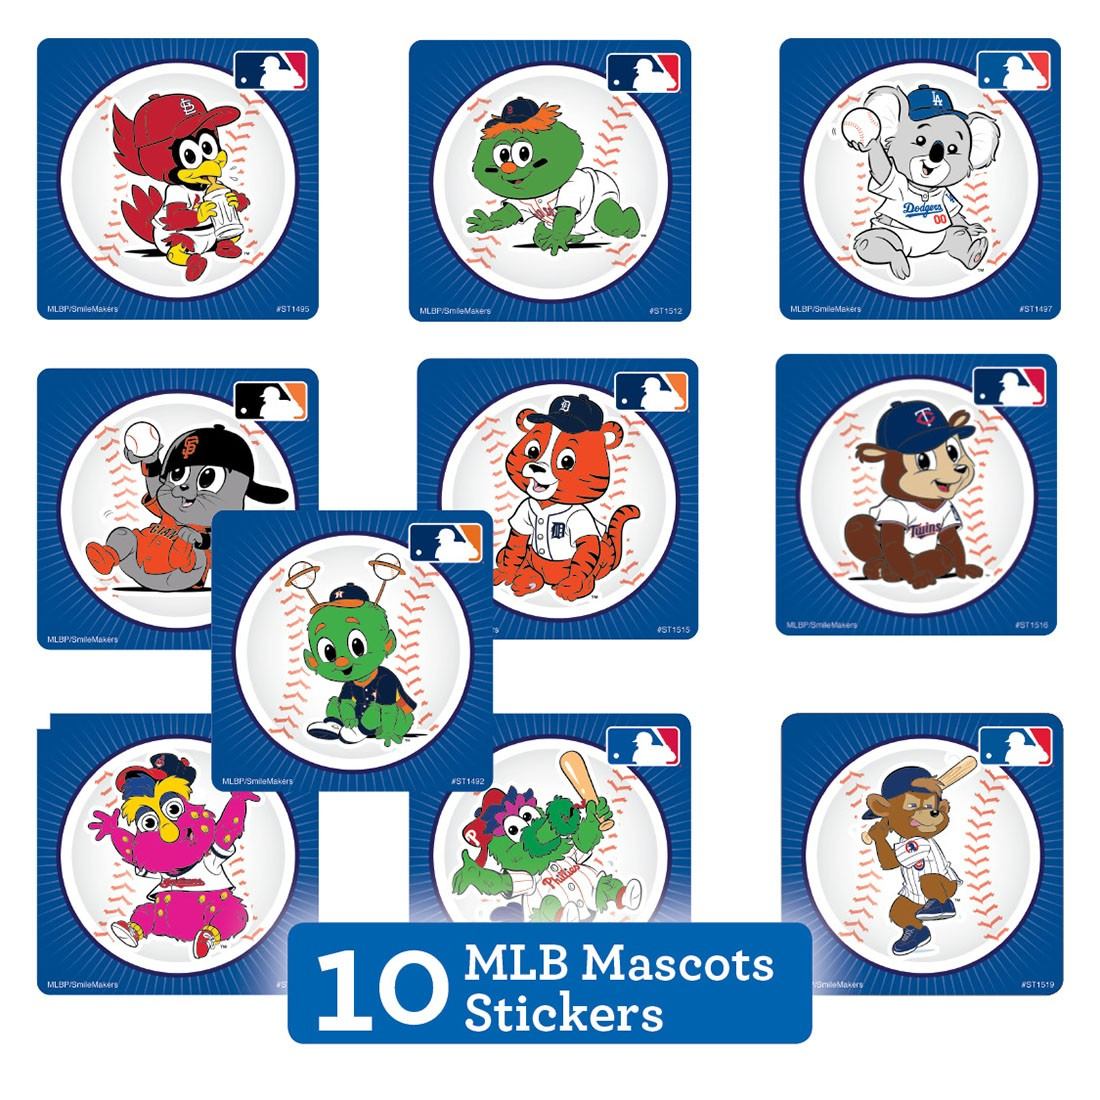 MLB Mascots Sticker Sampler   [image]